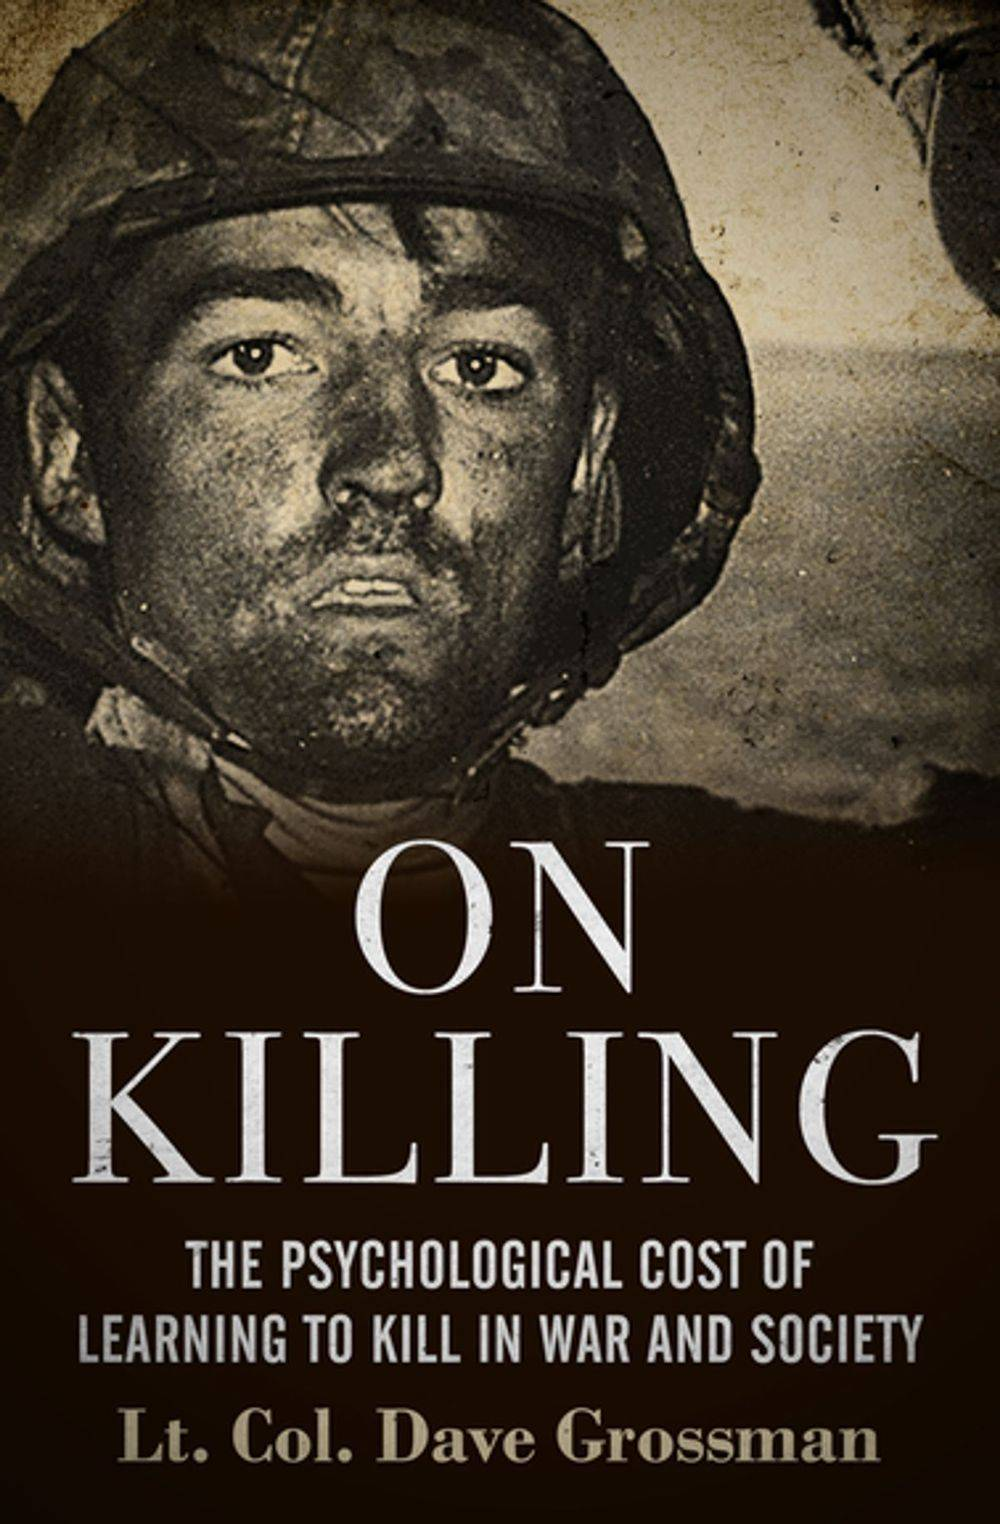 on killing, dave grossman, killing, war, society, war is my business